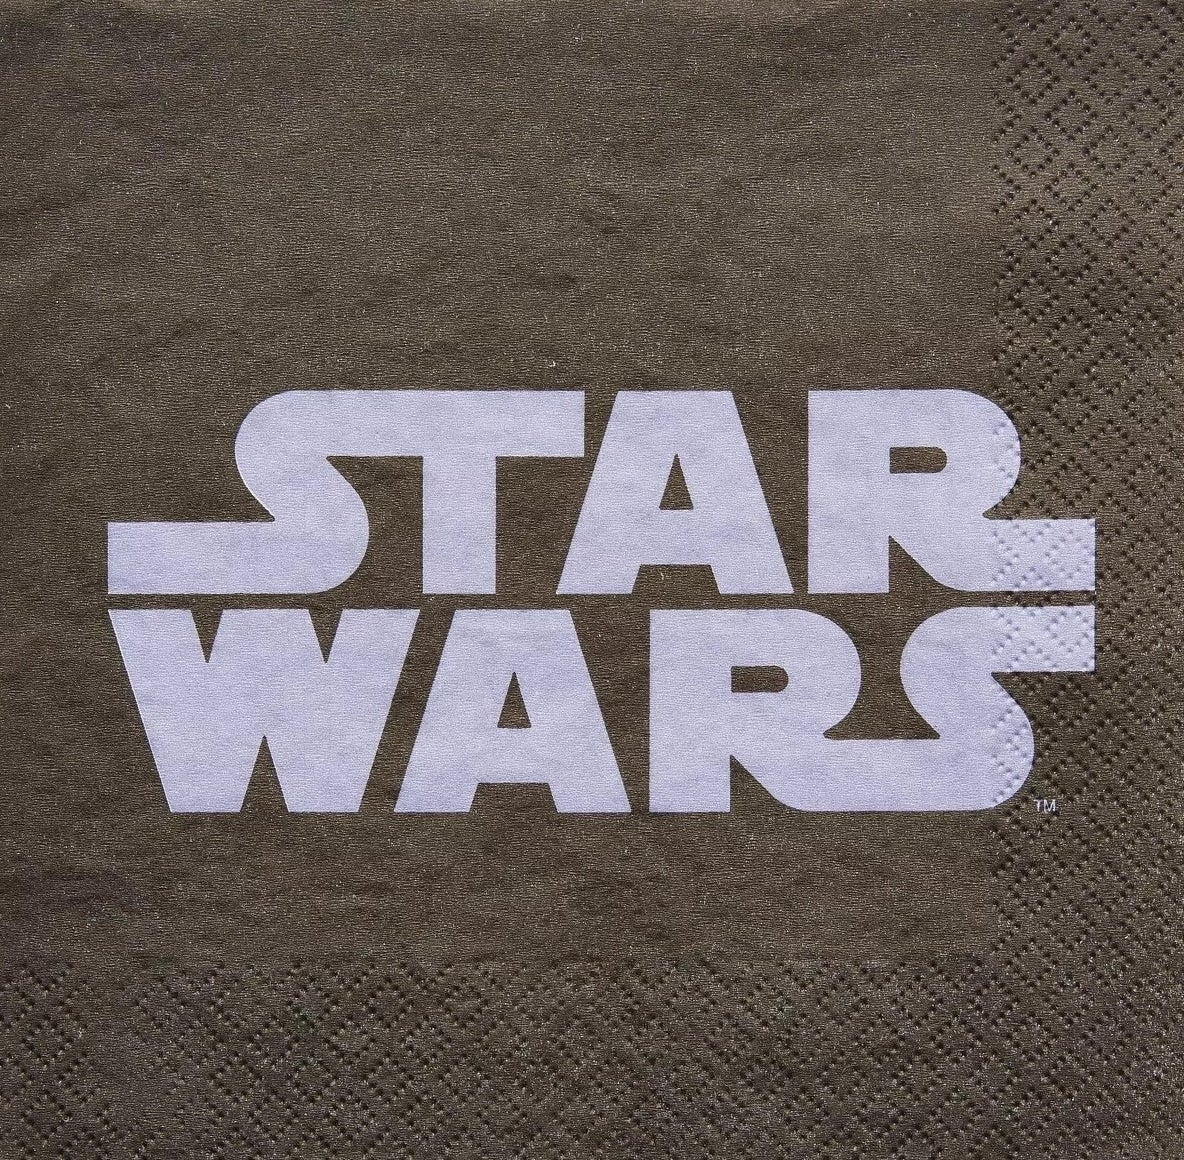 gray napkin with the logo for star wars in the center